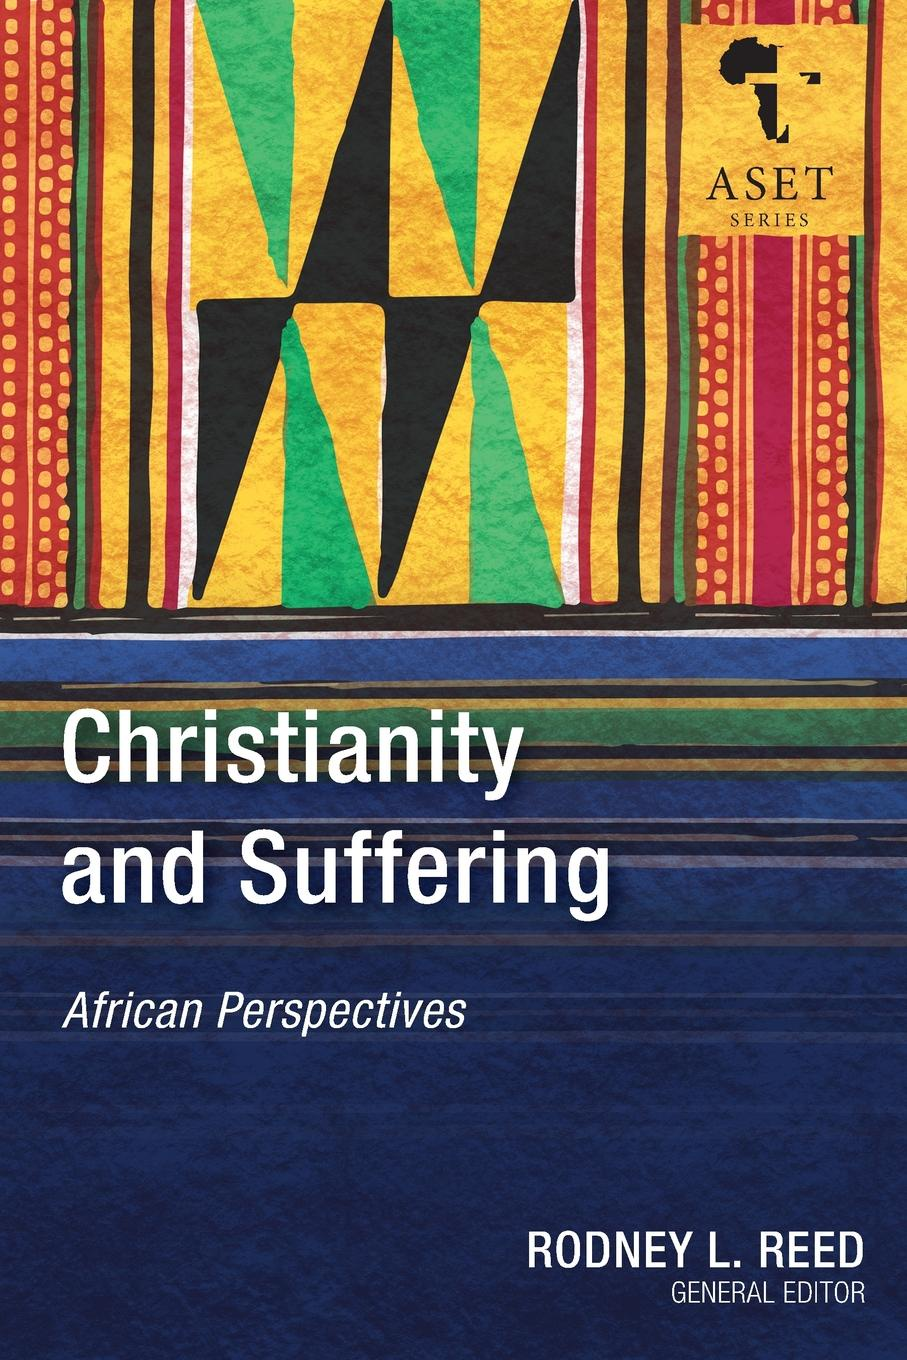 Christianity and Suffering. African Perspectives cd korn the serenity of suffering